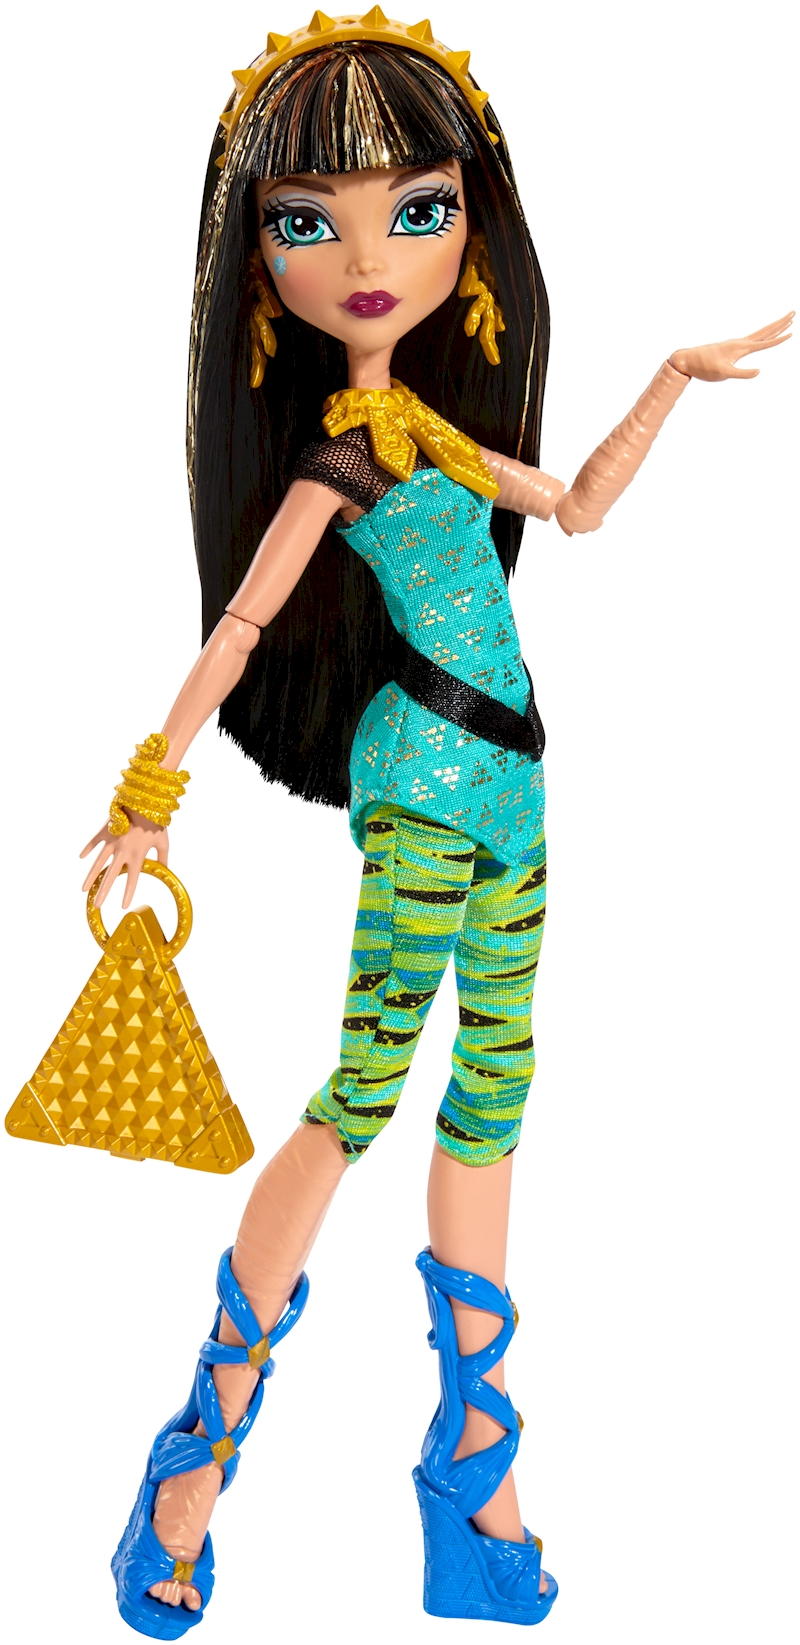 Monster high cleo de nile doll shop monster high doll accessories playsets toys monster - Image monster high ...